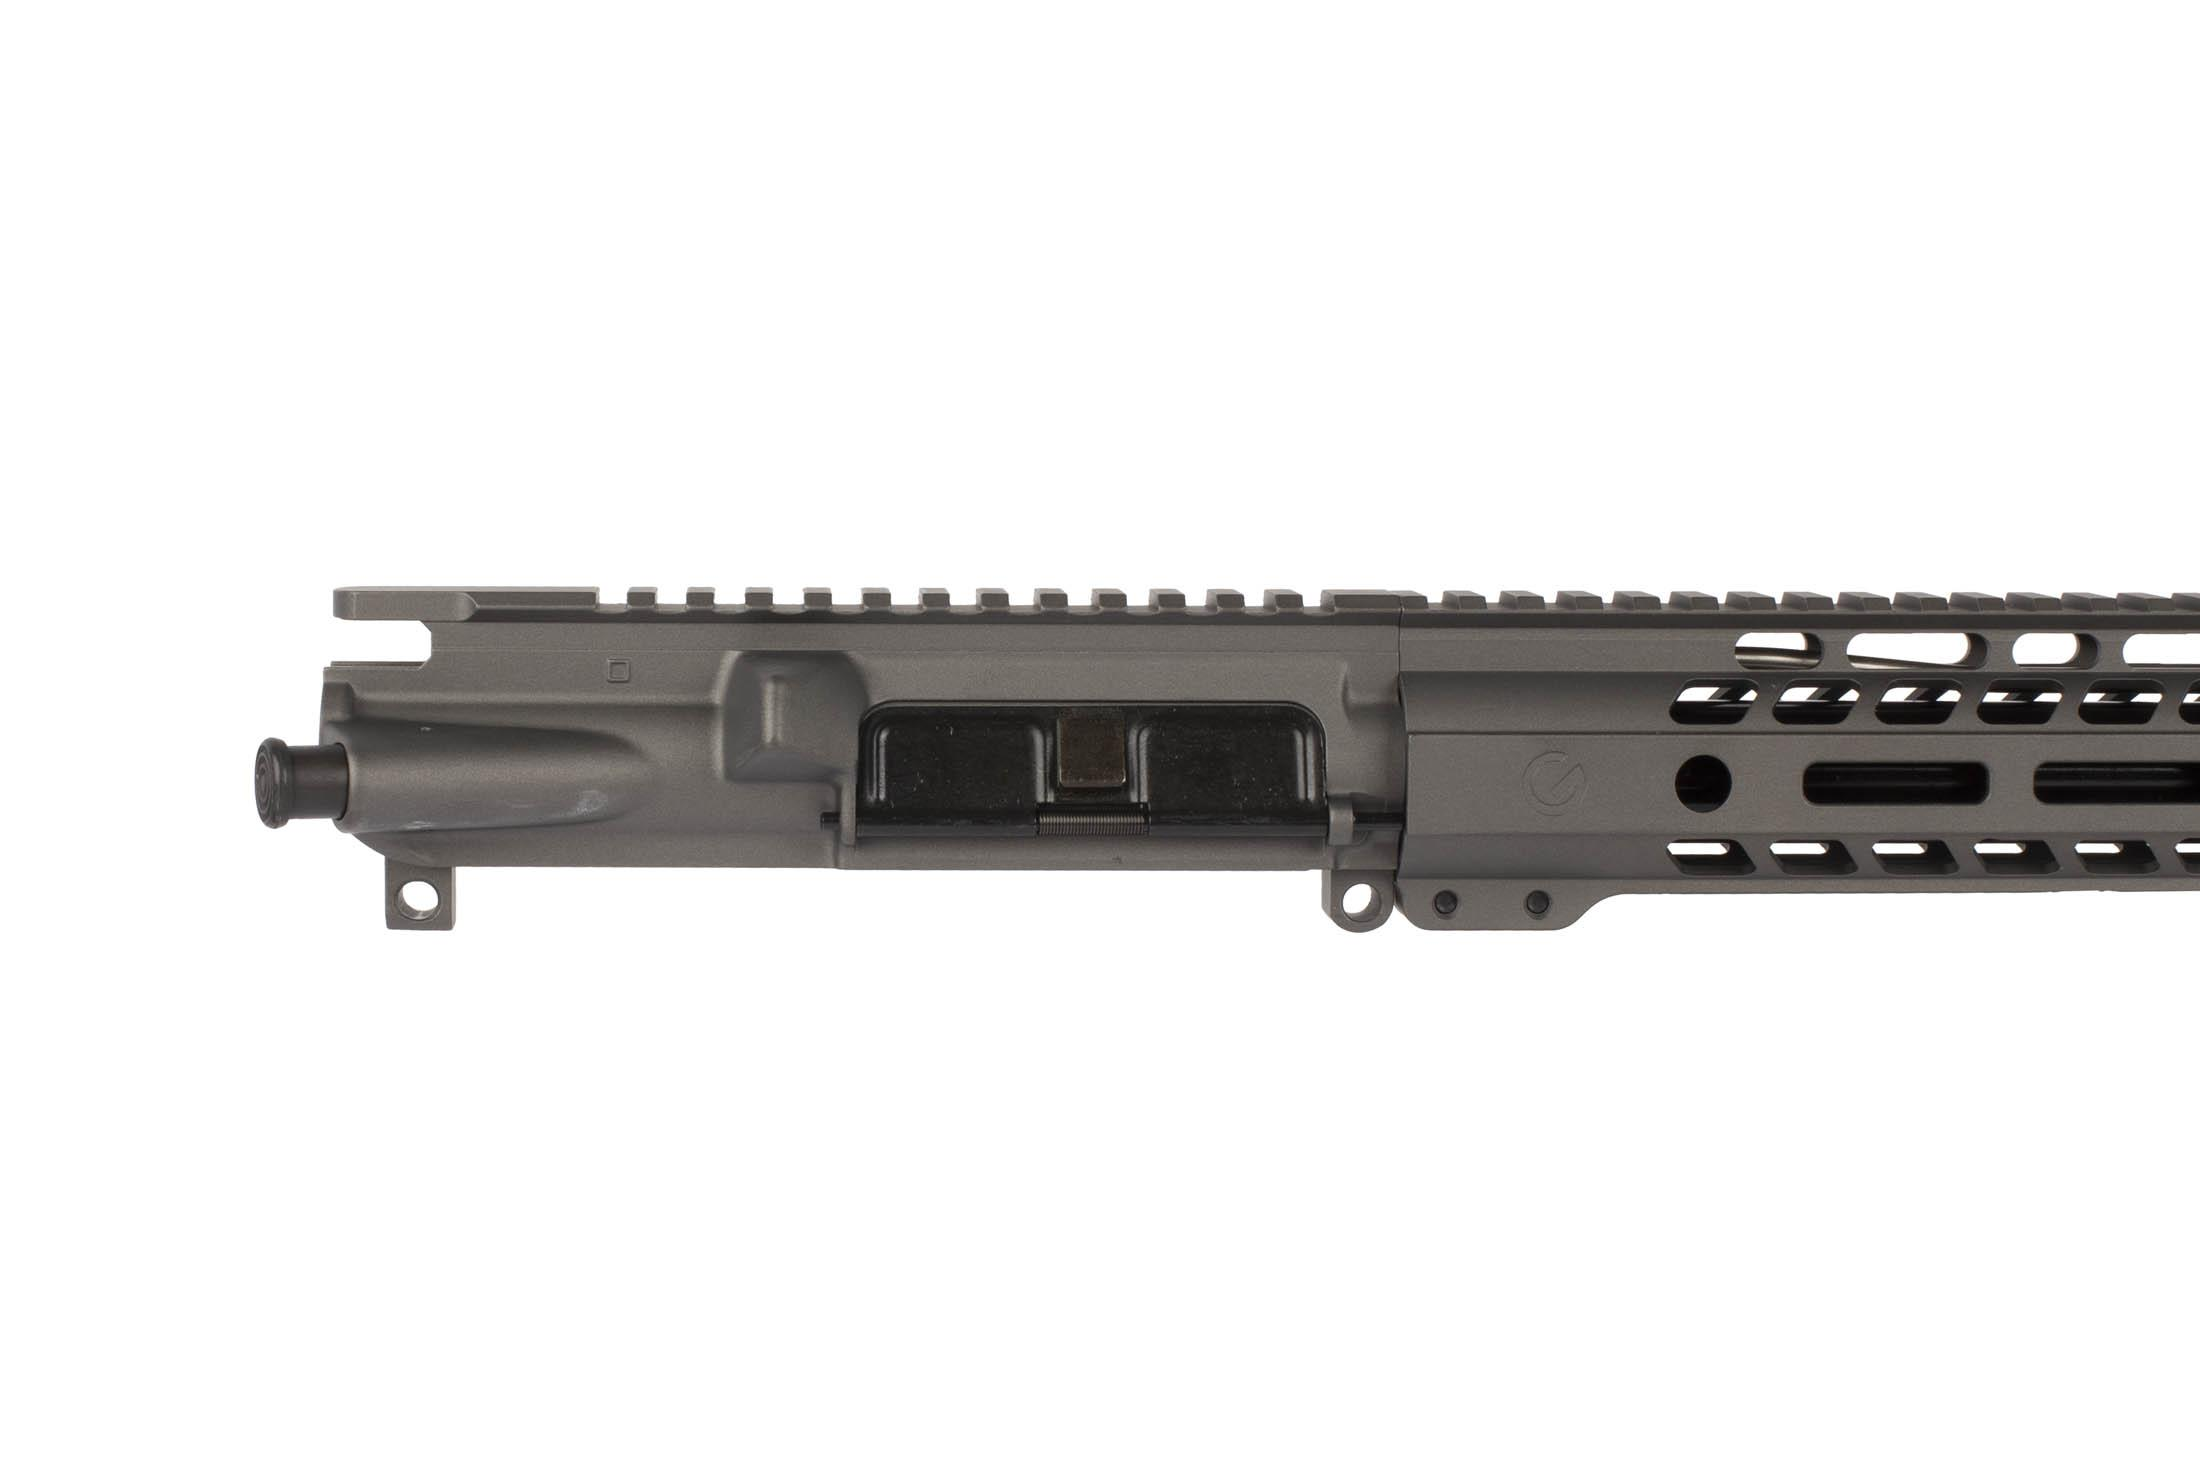 This Ghost Firearms 24 6.5 Grendel 1:8 Elite Rifle Length Barreled Upper is available in Tungsten Gray